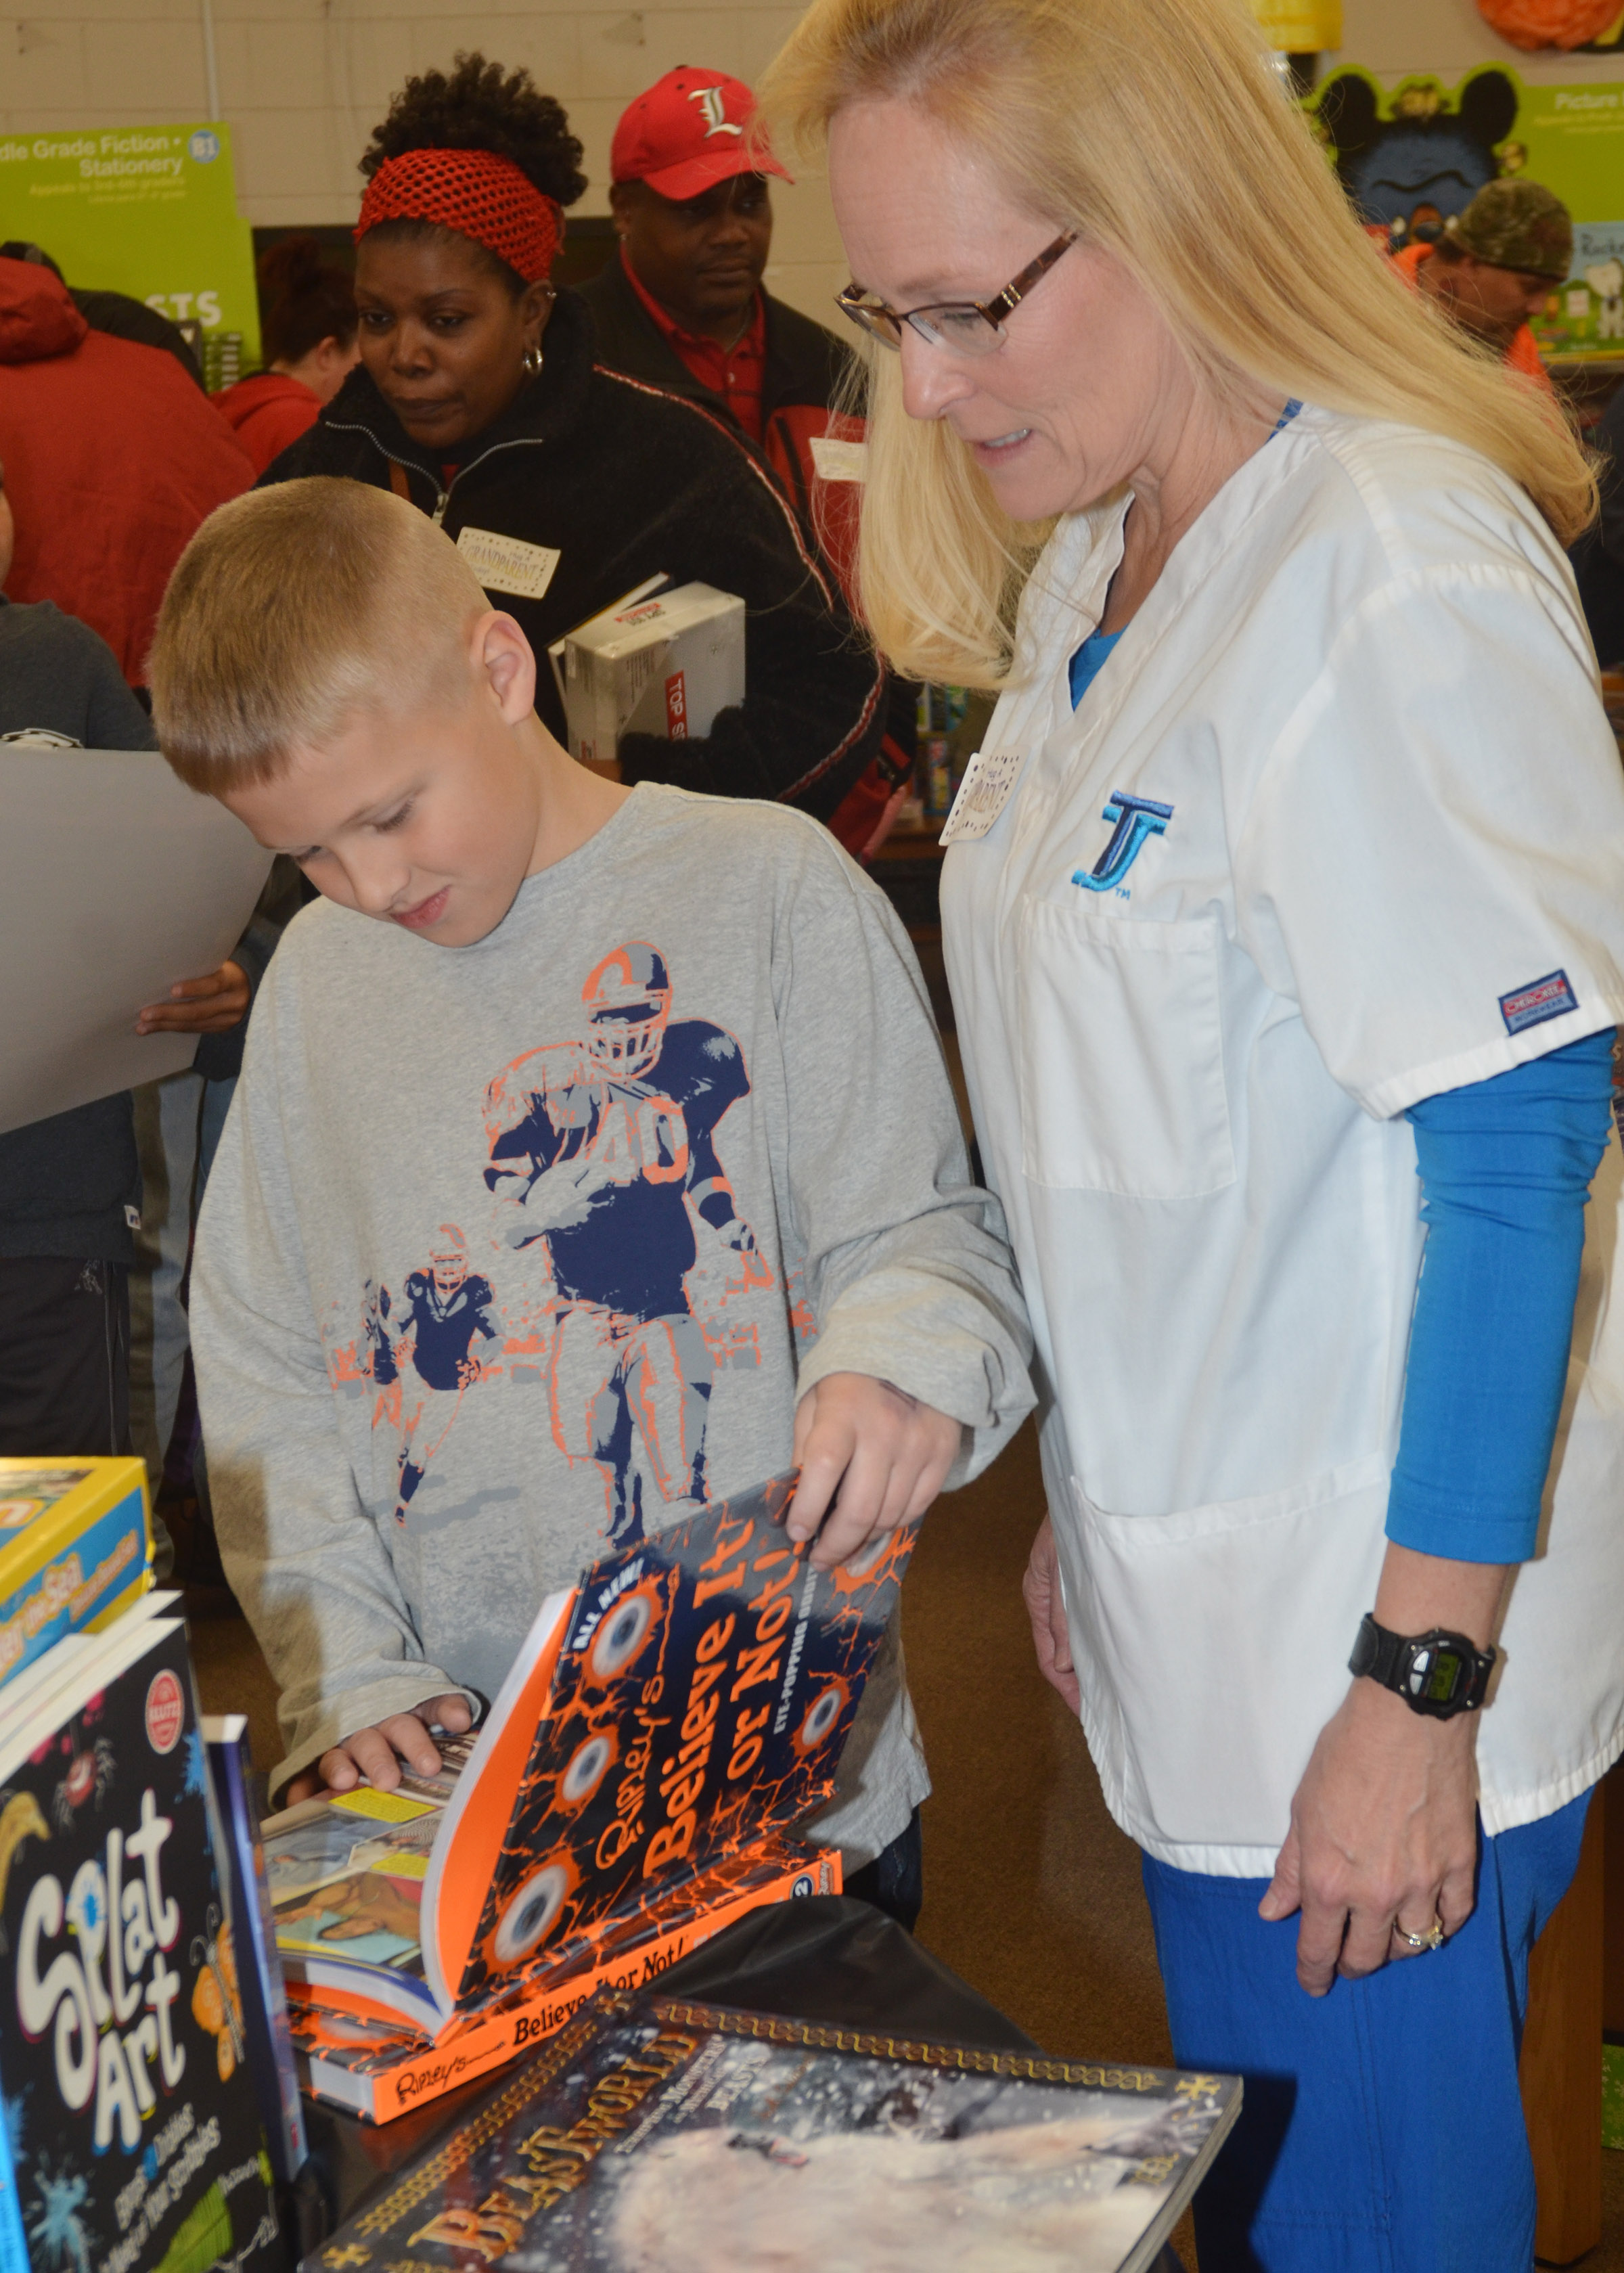 CES second-grader Evan Lockridge looks at books with his grandmother, Karen Hall.